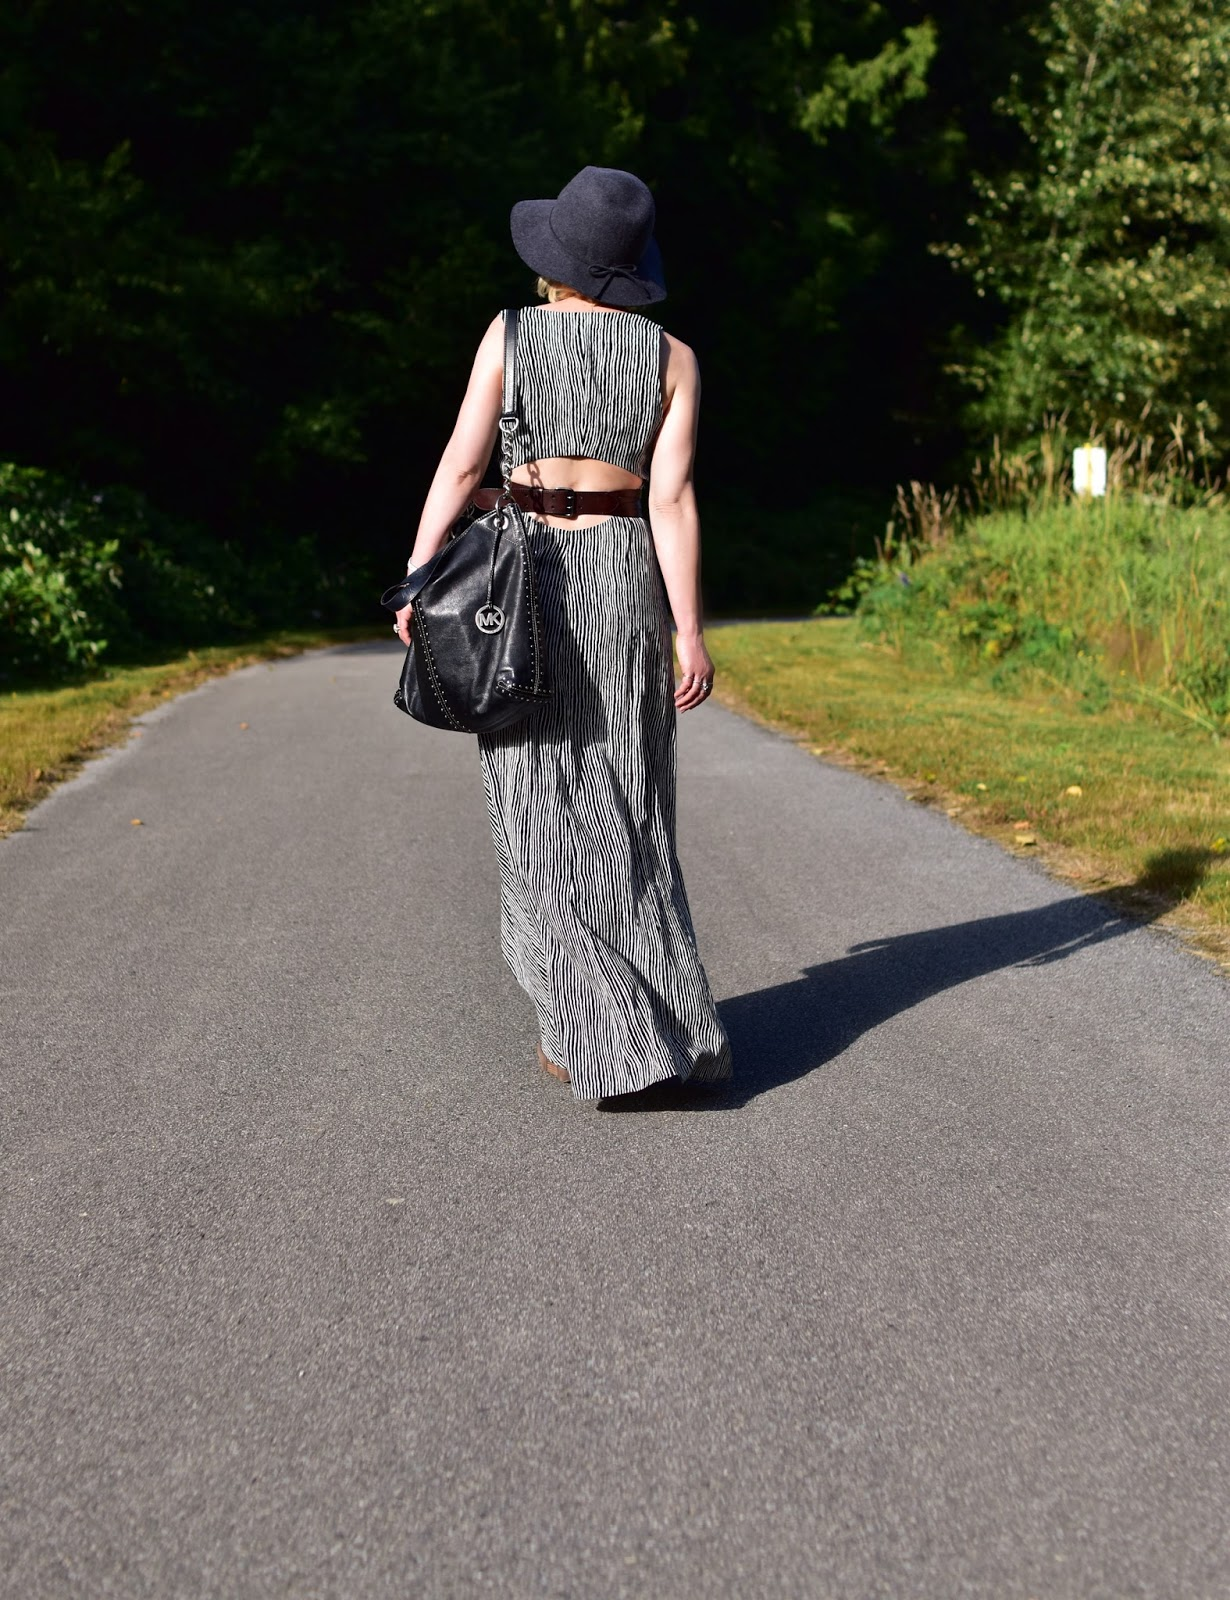 Monika Faulkner styles a striped maxi-dress with a corset belt, floppy hat, and MK bag